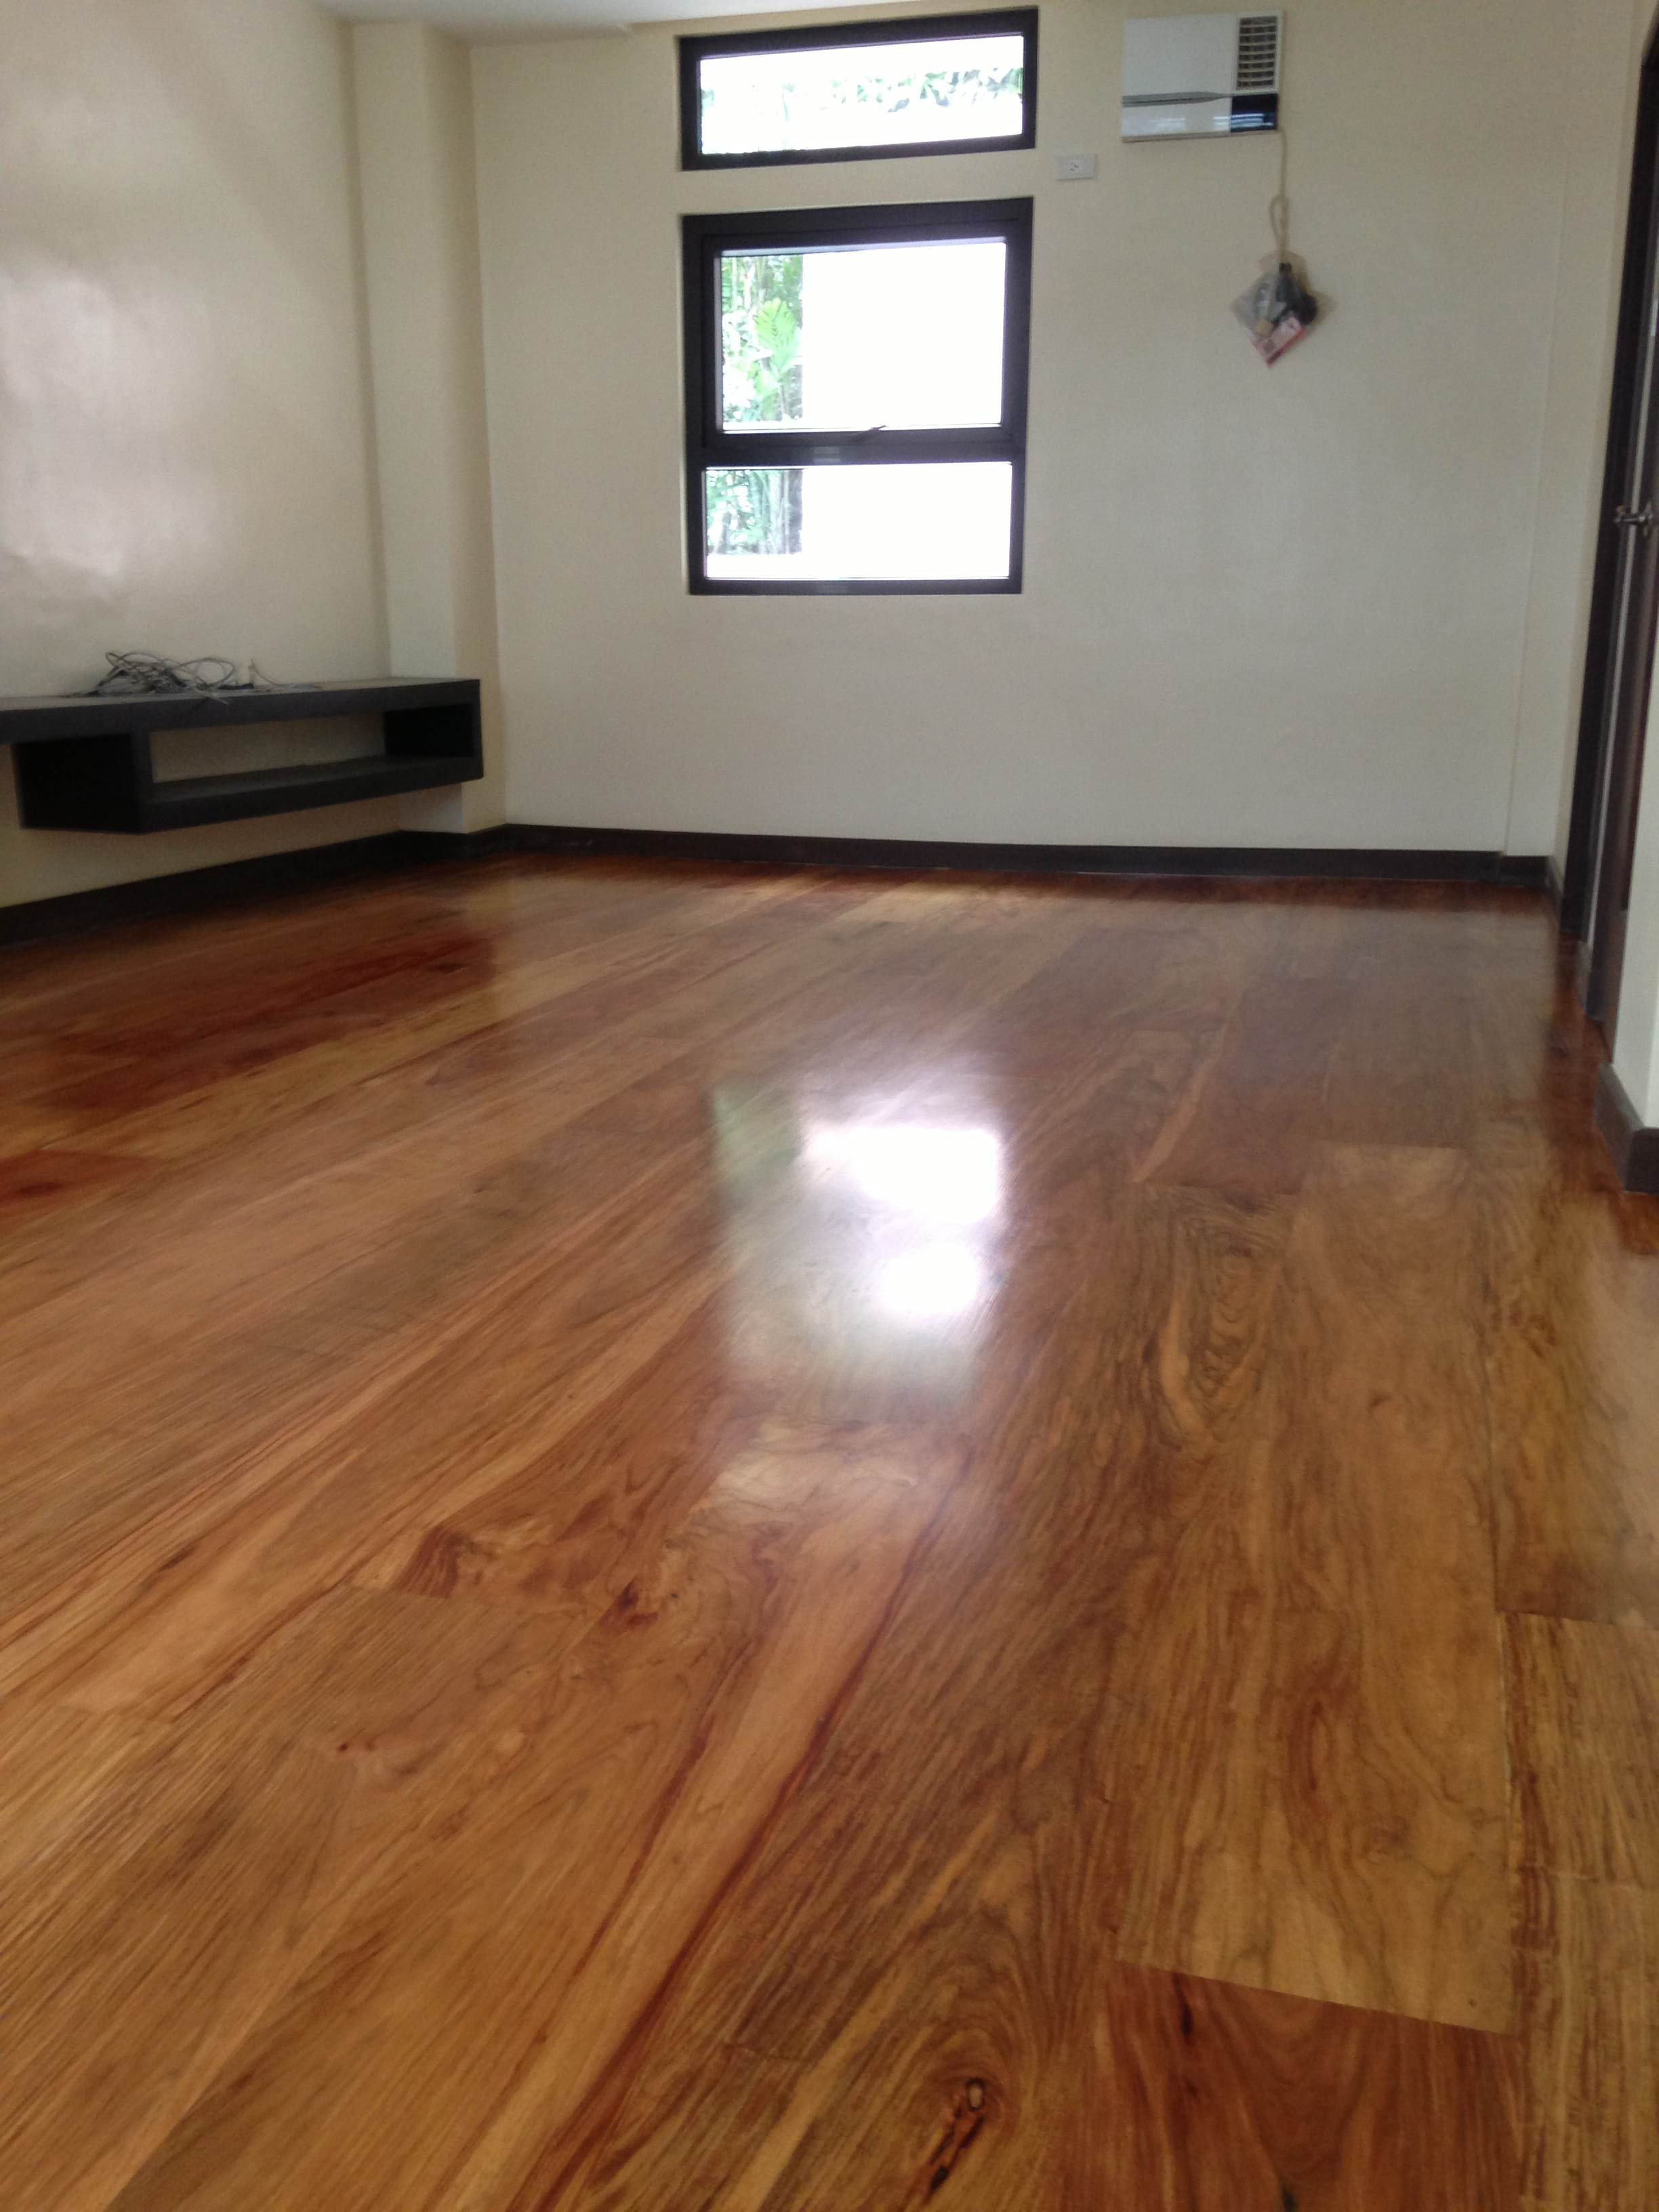 Narra Planks Solid Wood Flooring Philippines Easywood Products